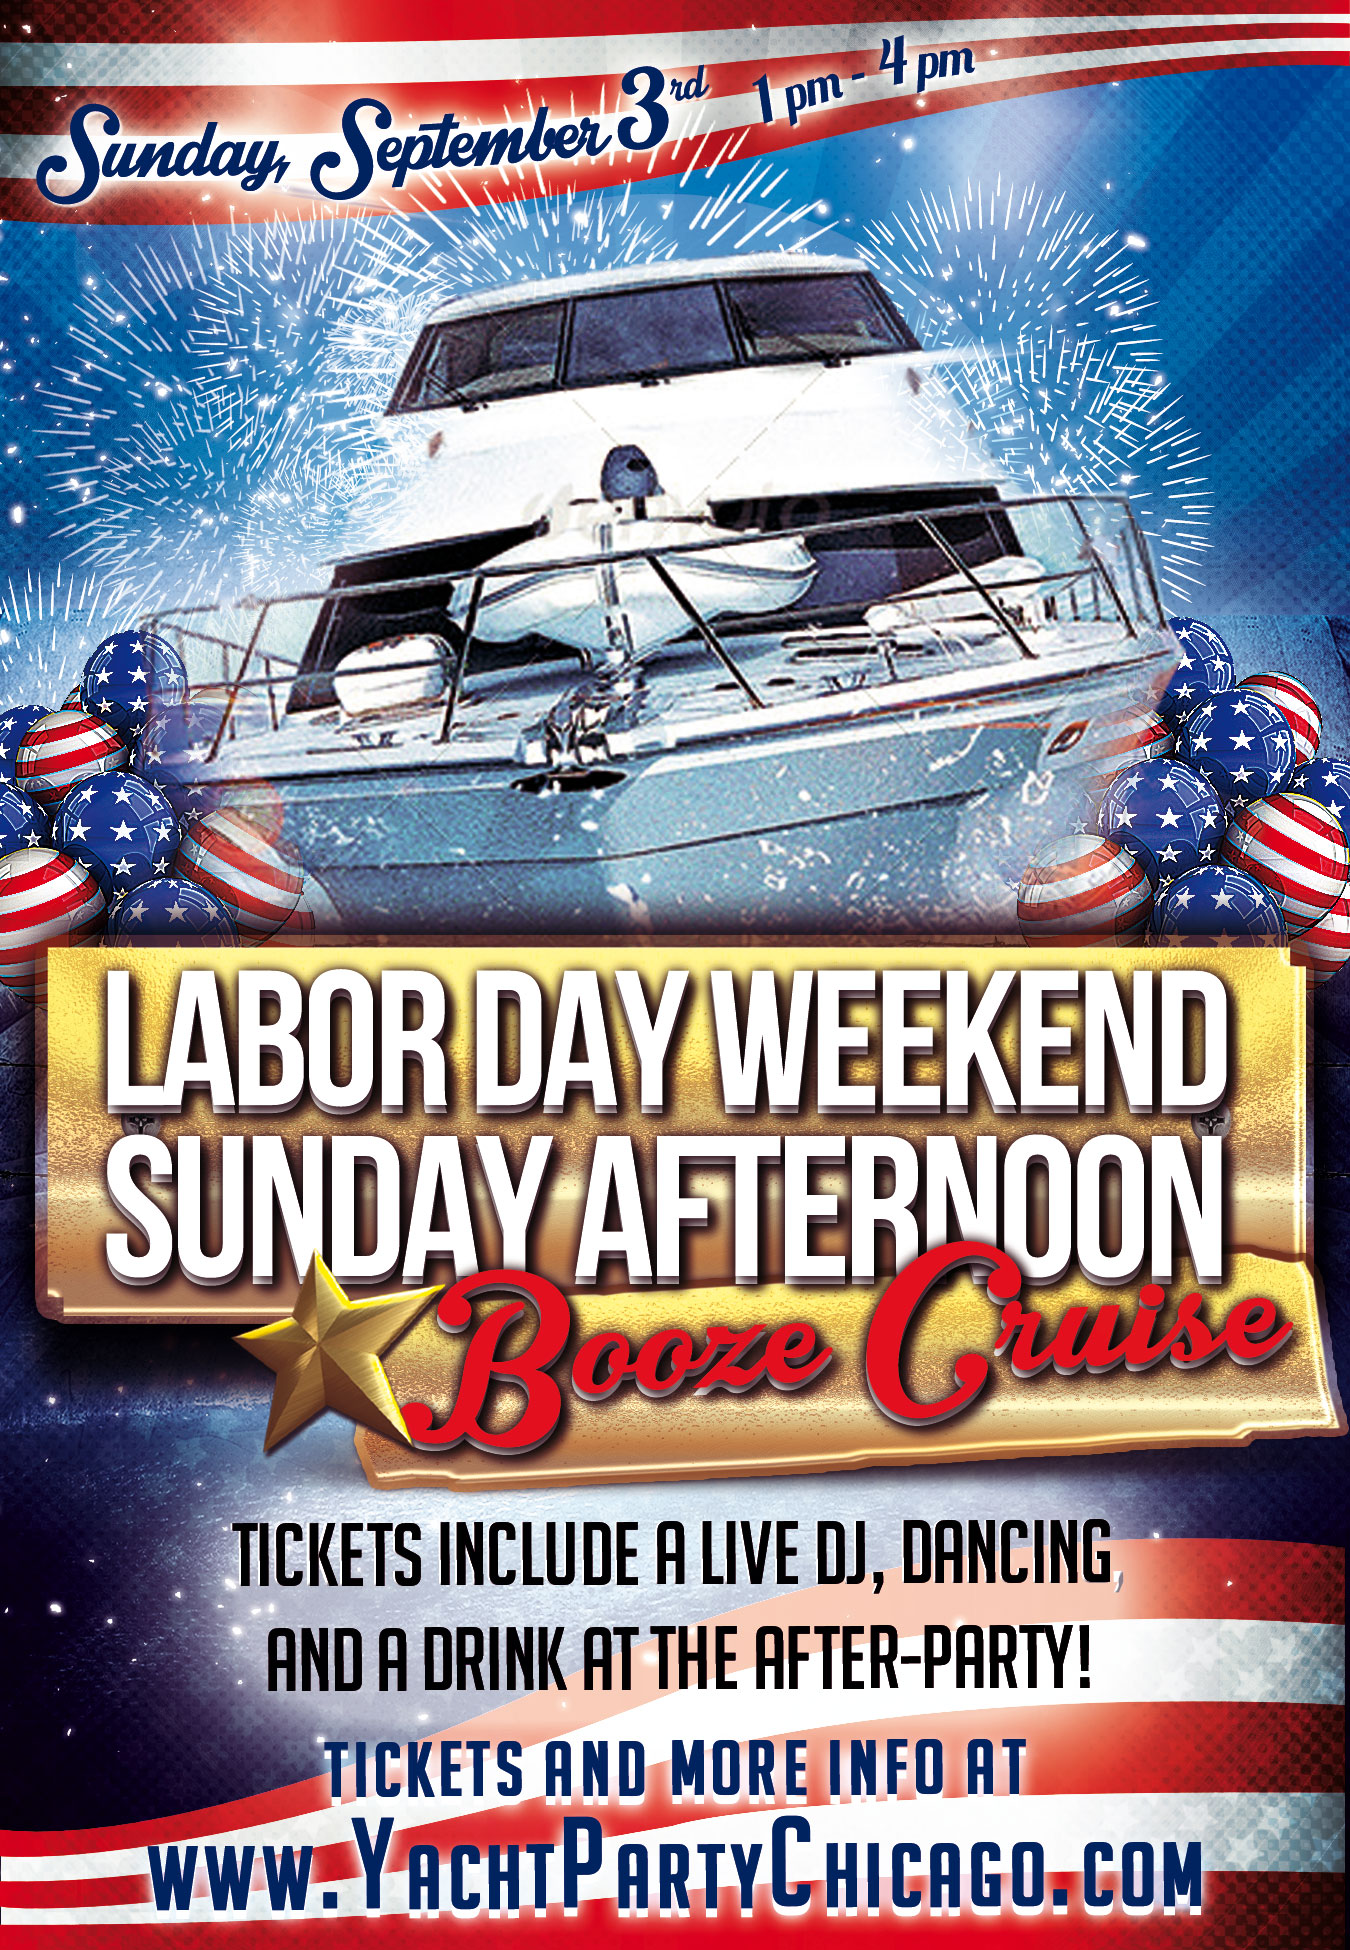 Labor Day Weekend Sunday Afternoon Booze Cruise on Lake Michigan! Tickets include a Live DJ, Dancing, and A Drink At The After-Party! Catch breathtaking views of the skyline while aboard the booze cruise!